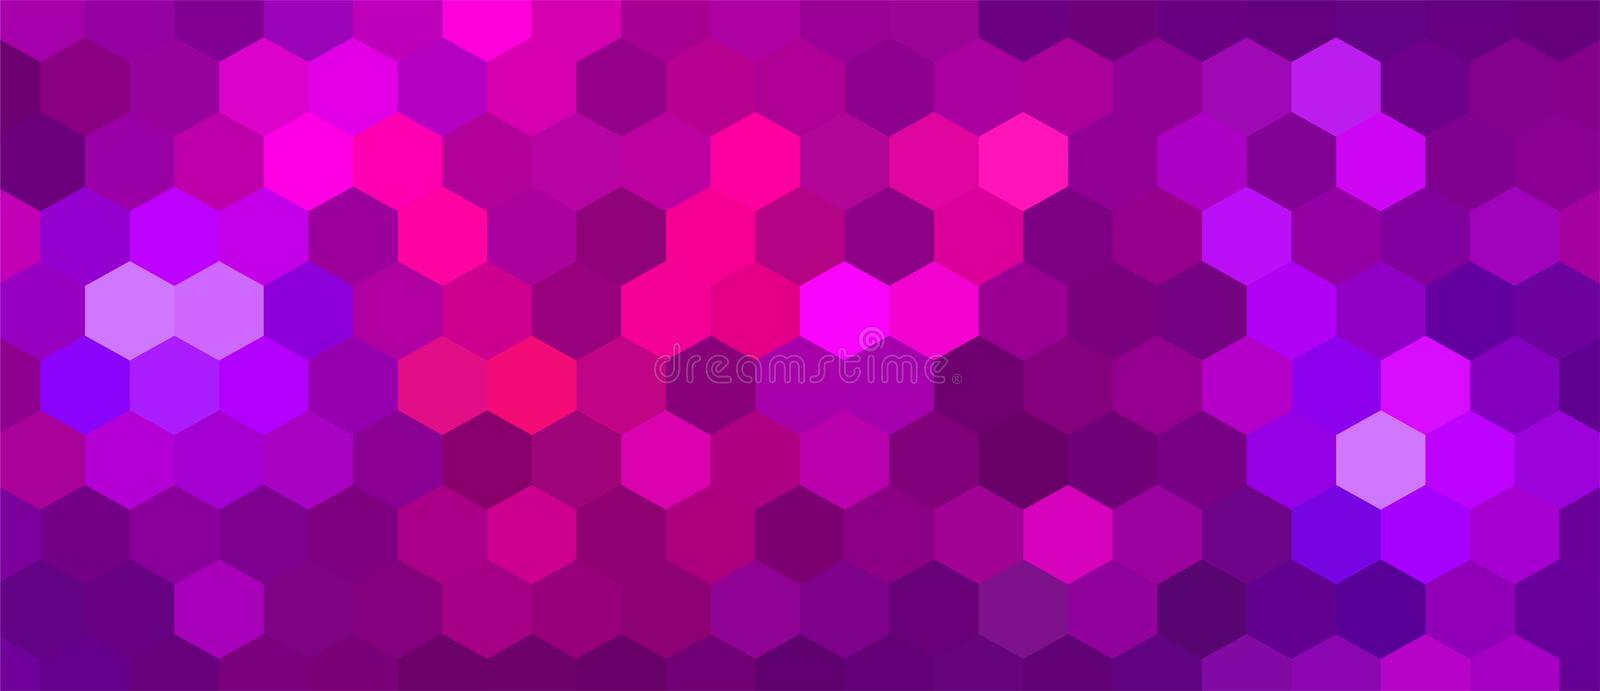 Brightly Colored Pink and Purple Mosaic Design. Saturated Pink Background for Your Advertising Graphic Design Project. Magenta Desktop Wallpaper. Party vector illustration